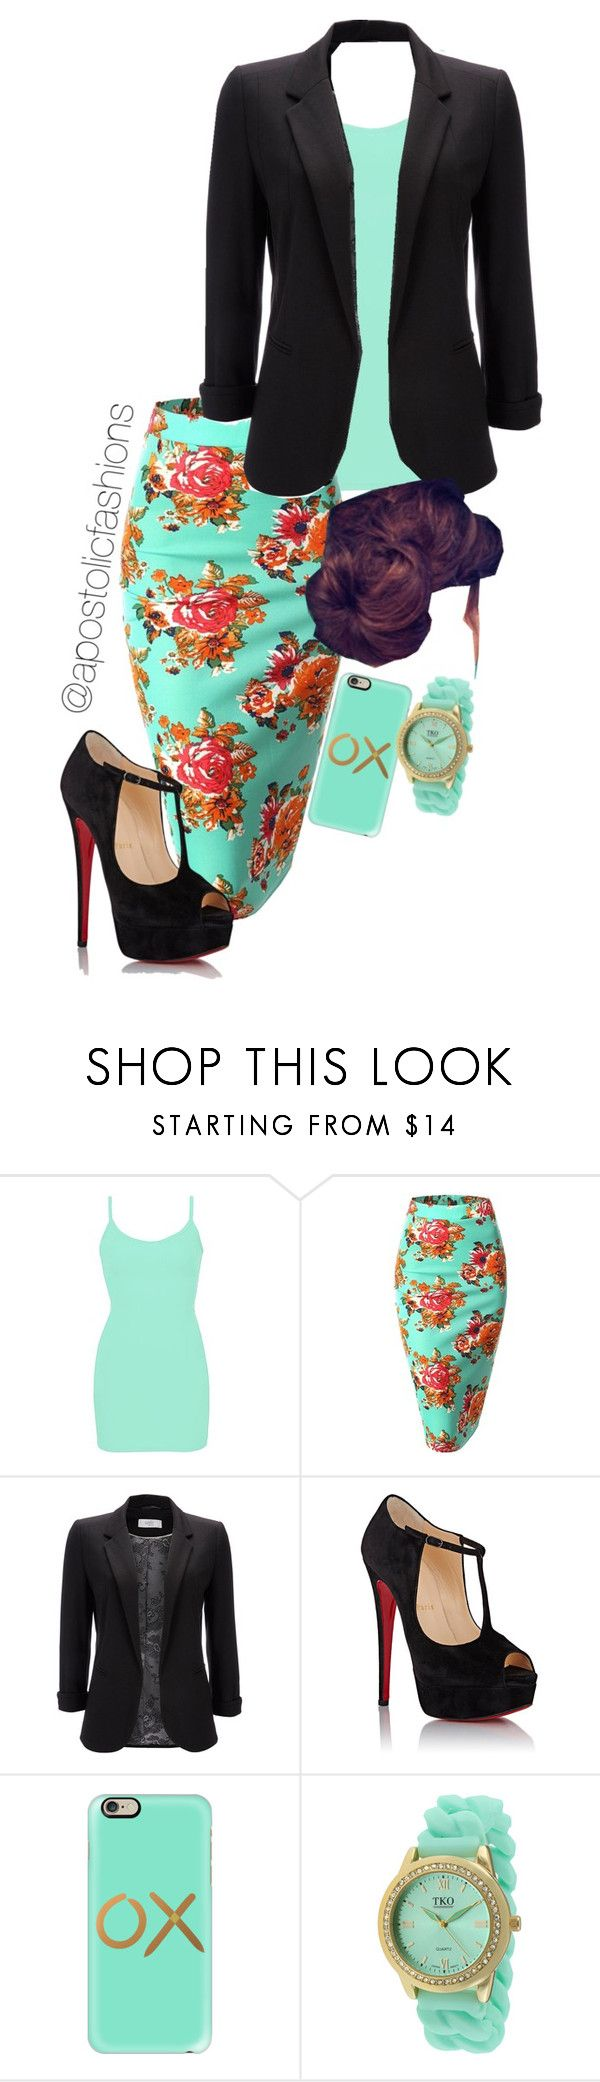 """Apostolic Fashions #974"" by apostolicfashions on Polyvore featuring BKE core, Wallis, Christian Louboutin, Casetify and TKO Orlogi"